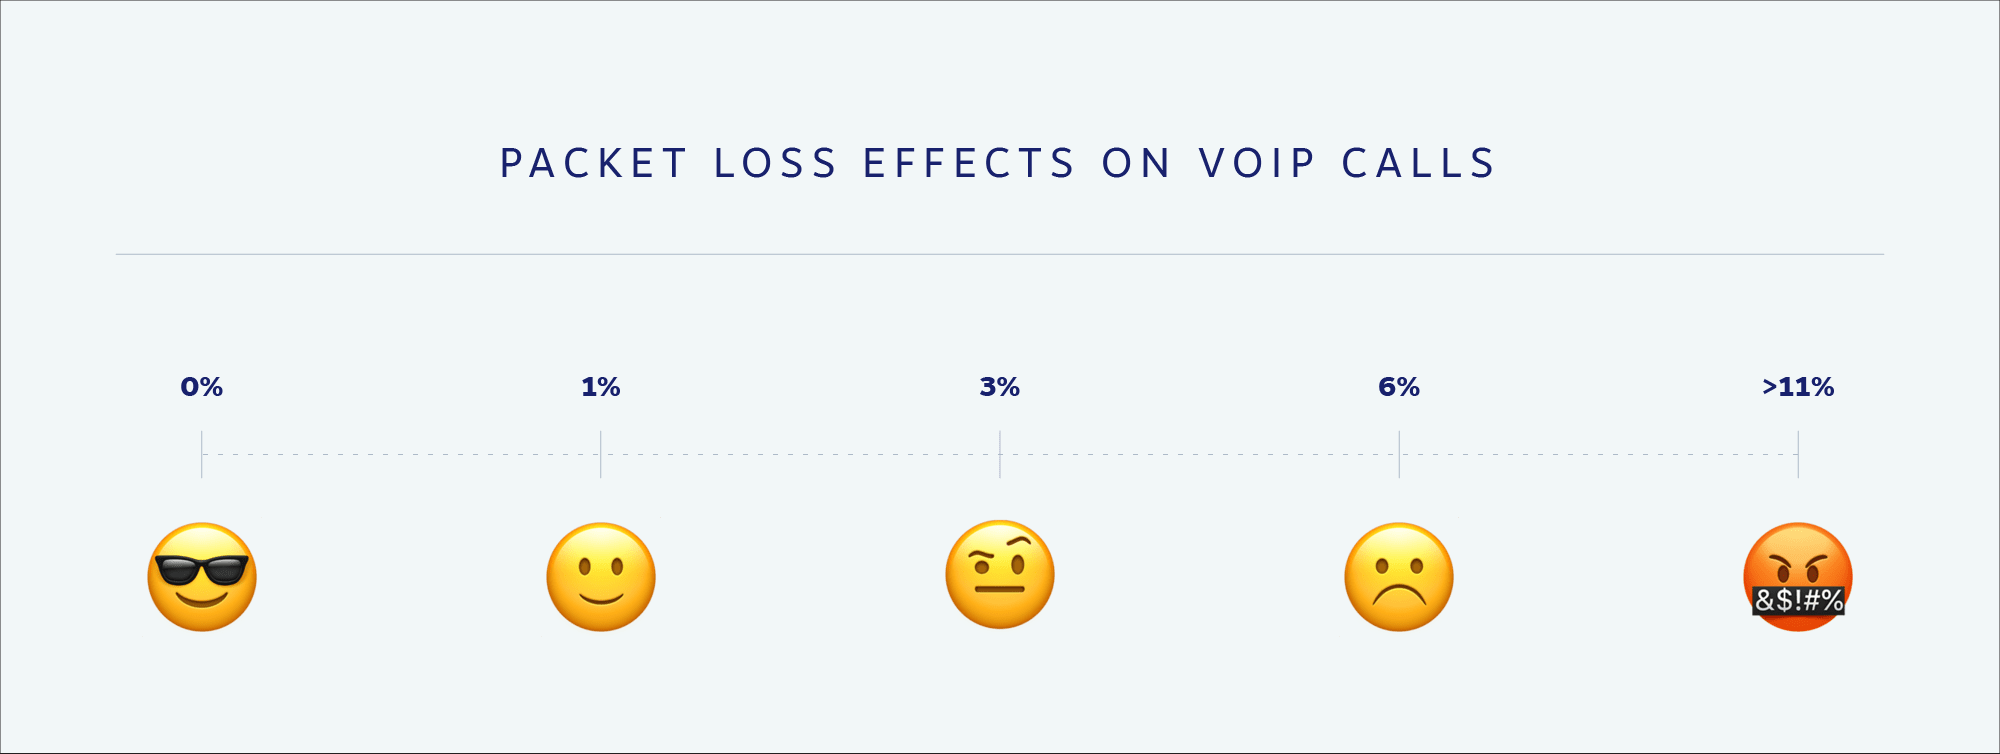 Packet Loss Percentage (%) Effect on VoIP Phone Calls